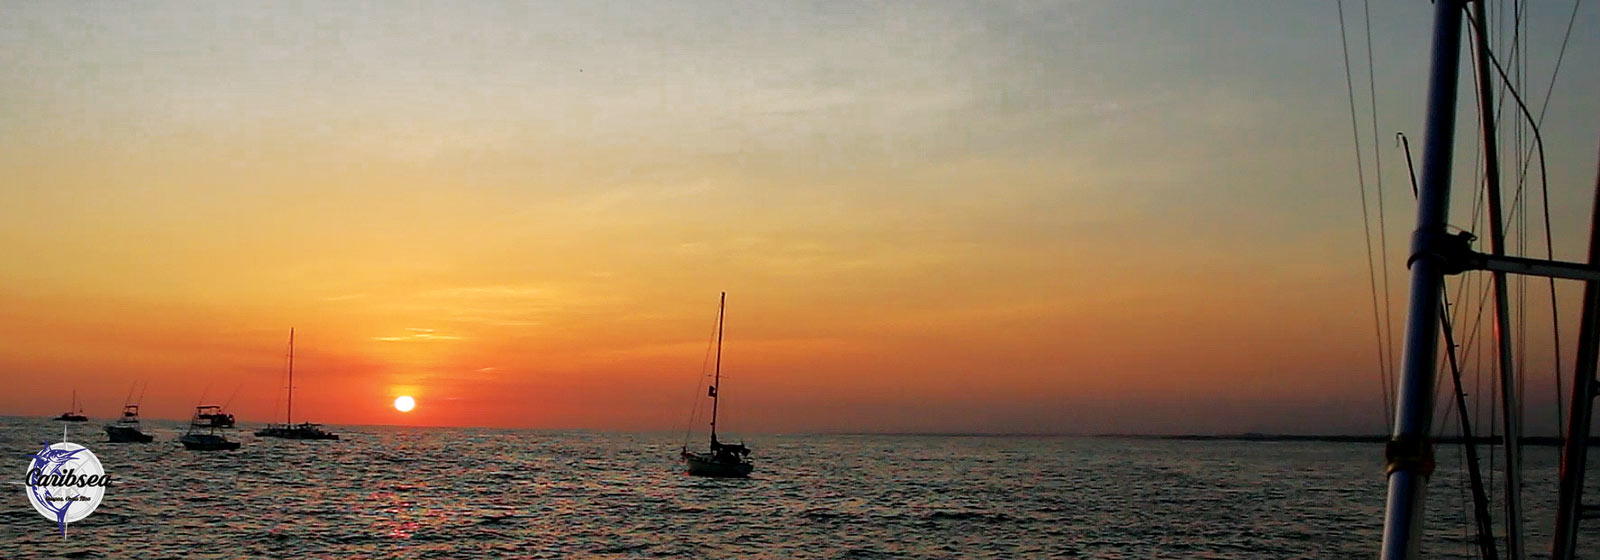 Caribsea sportfishing charter: sunset from the deck